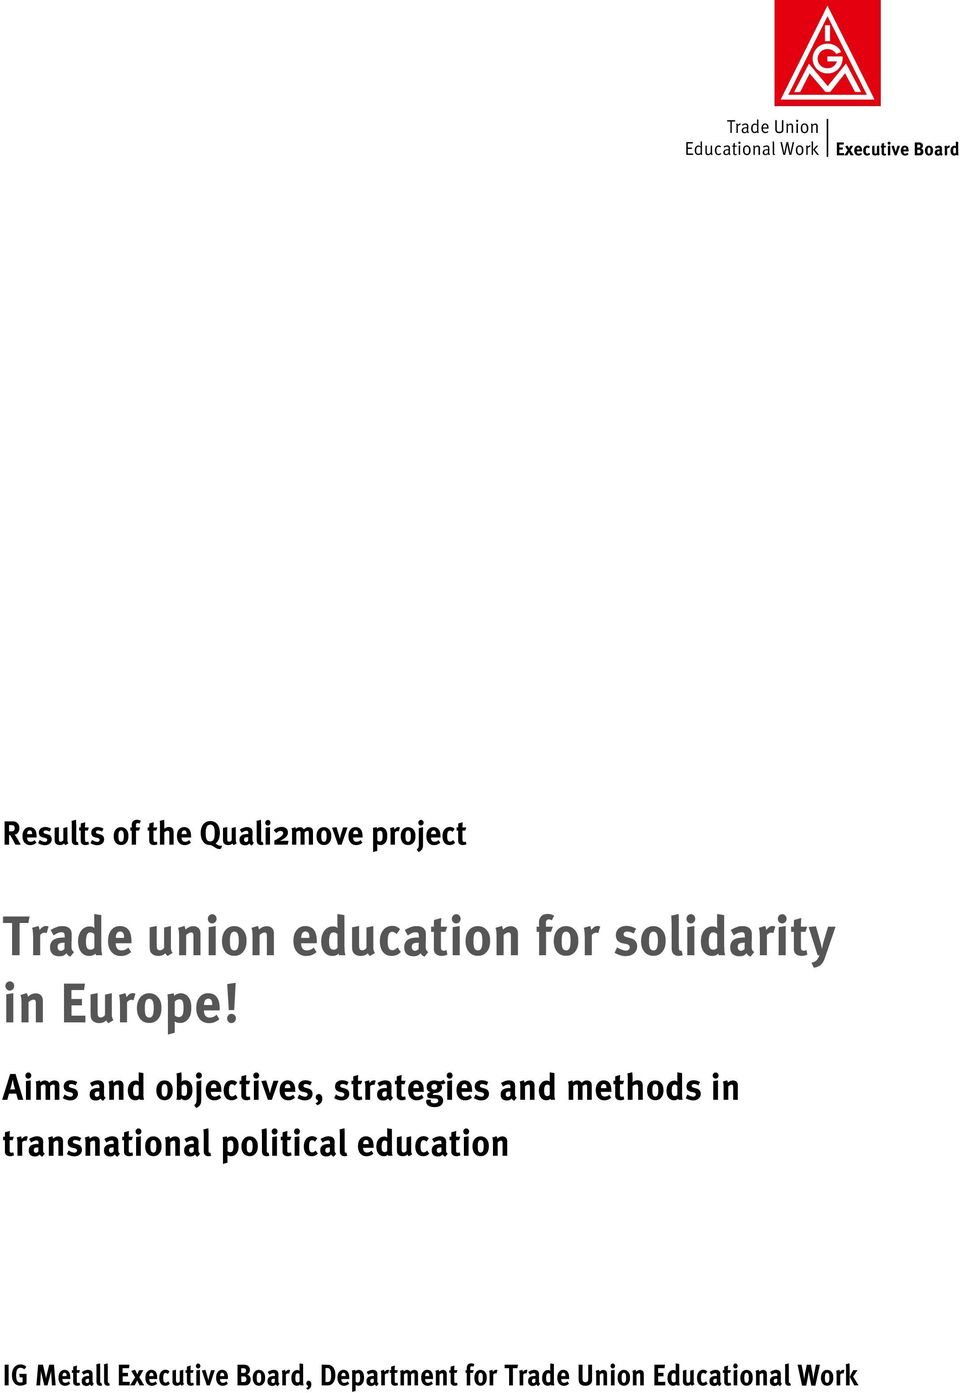 Aims and objectives, strategies and methods in transnational